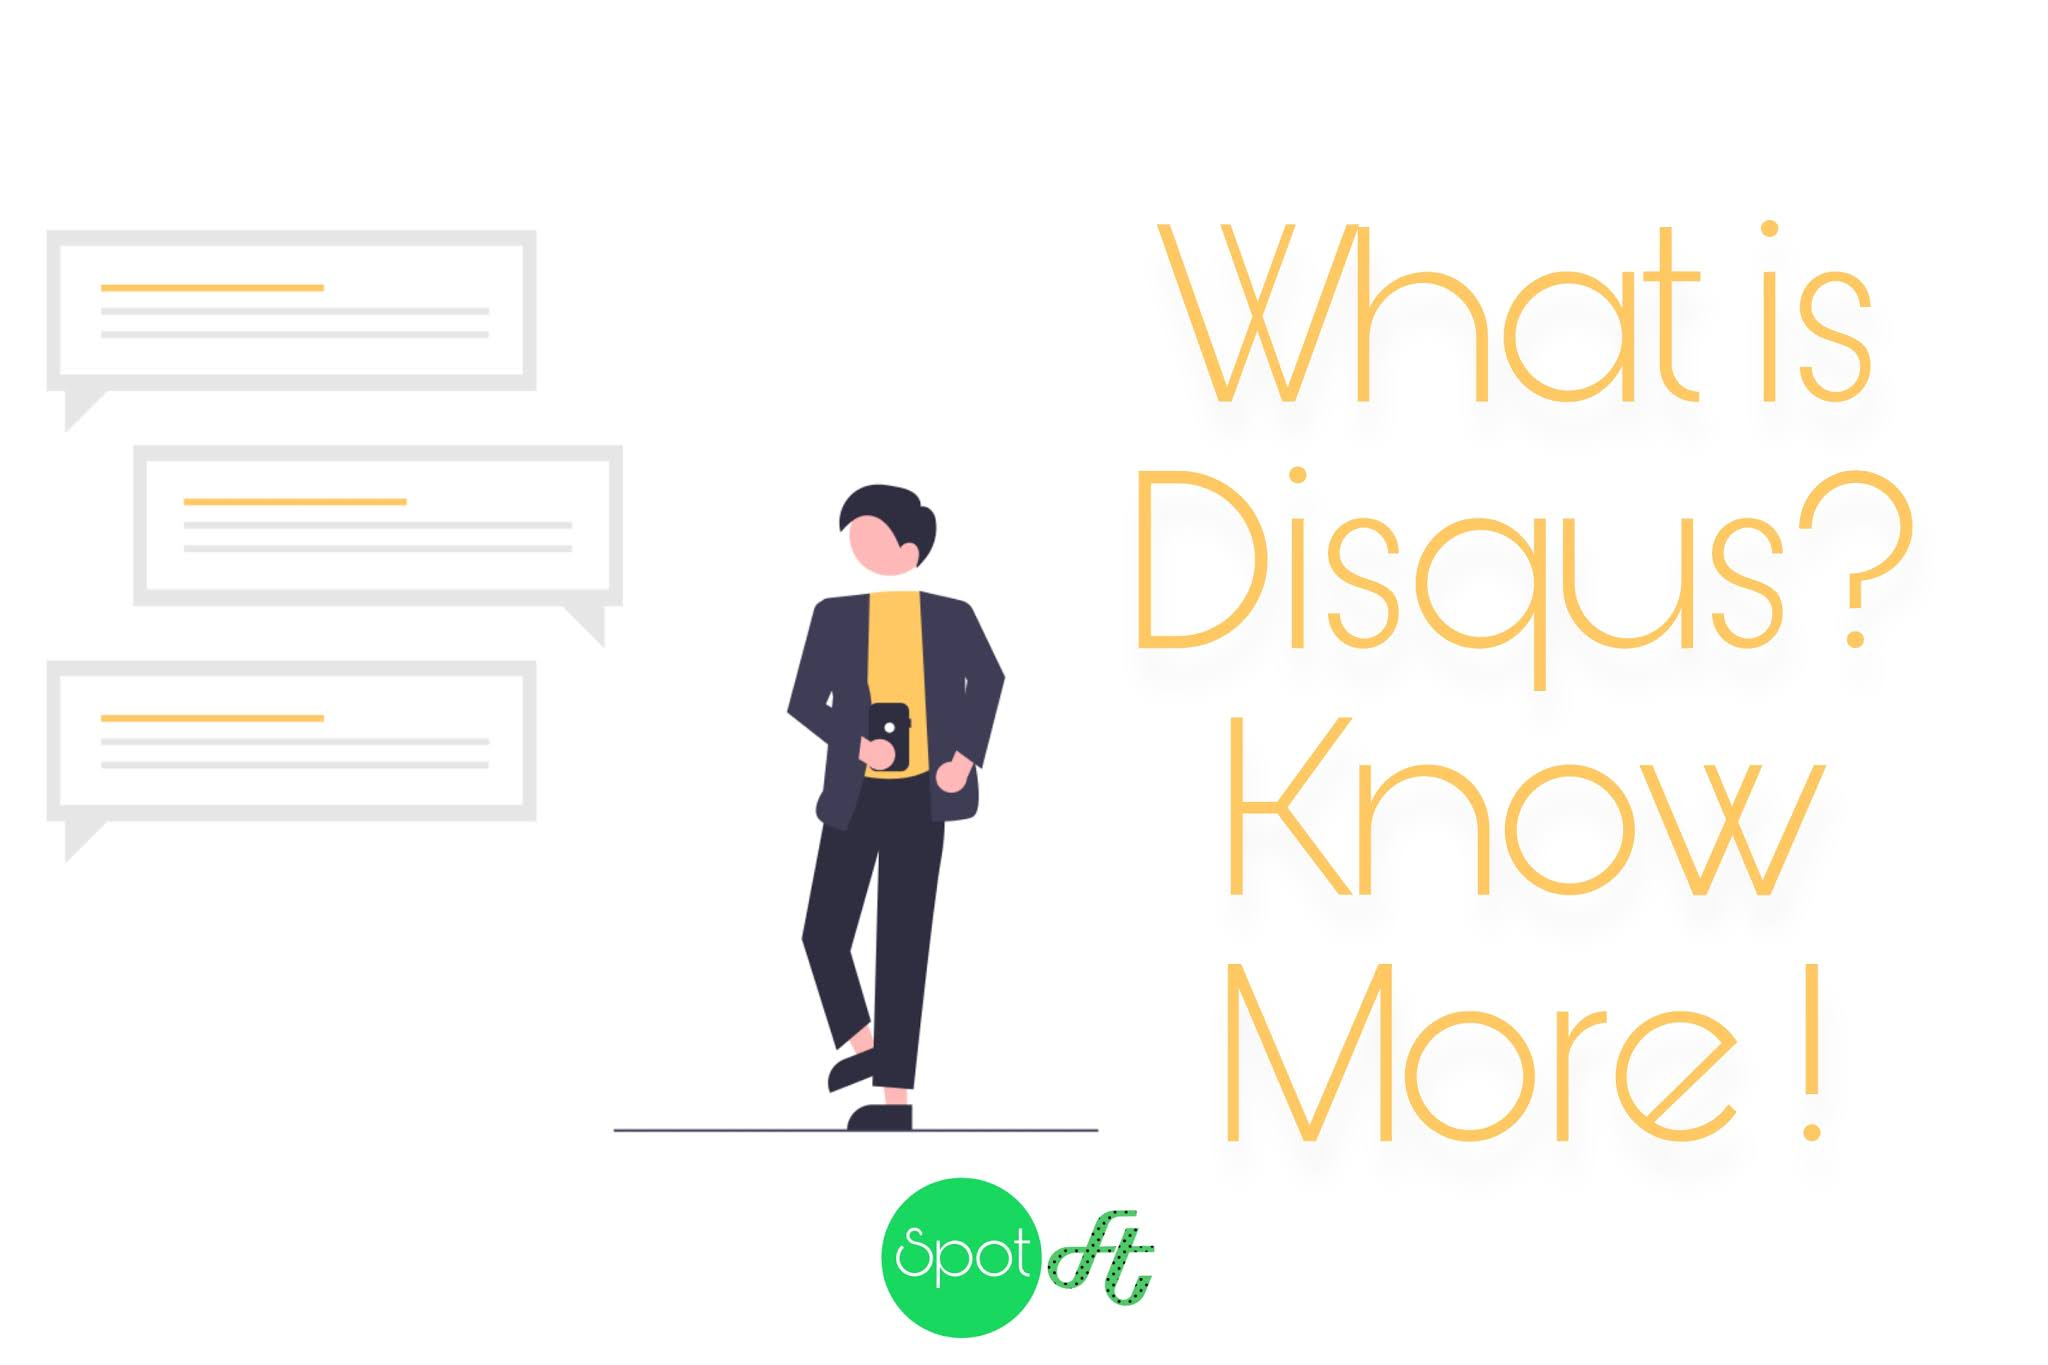 what is Disqus ?